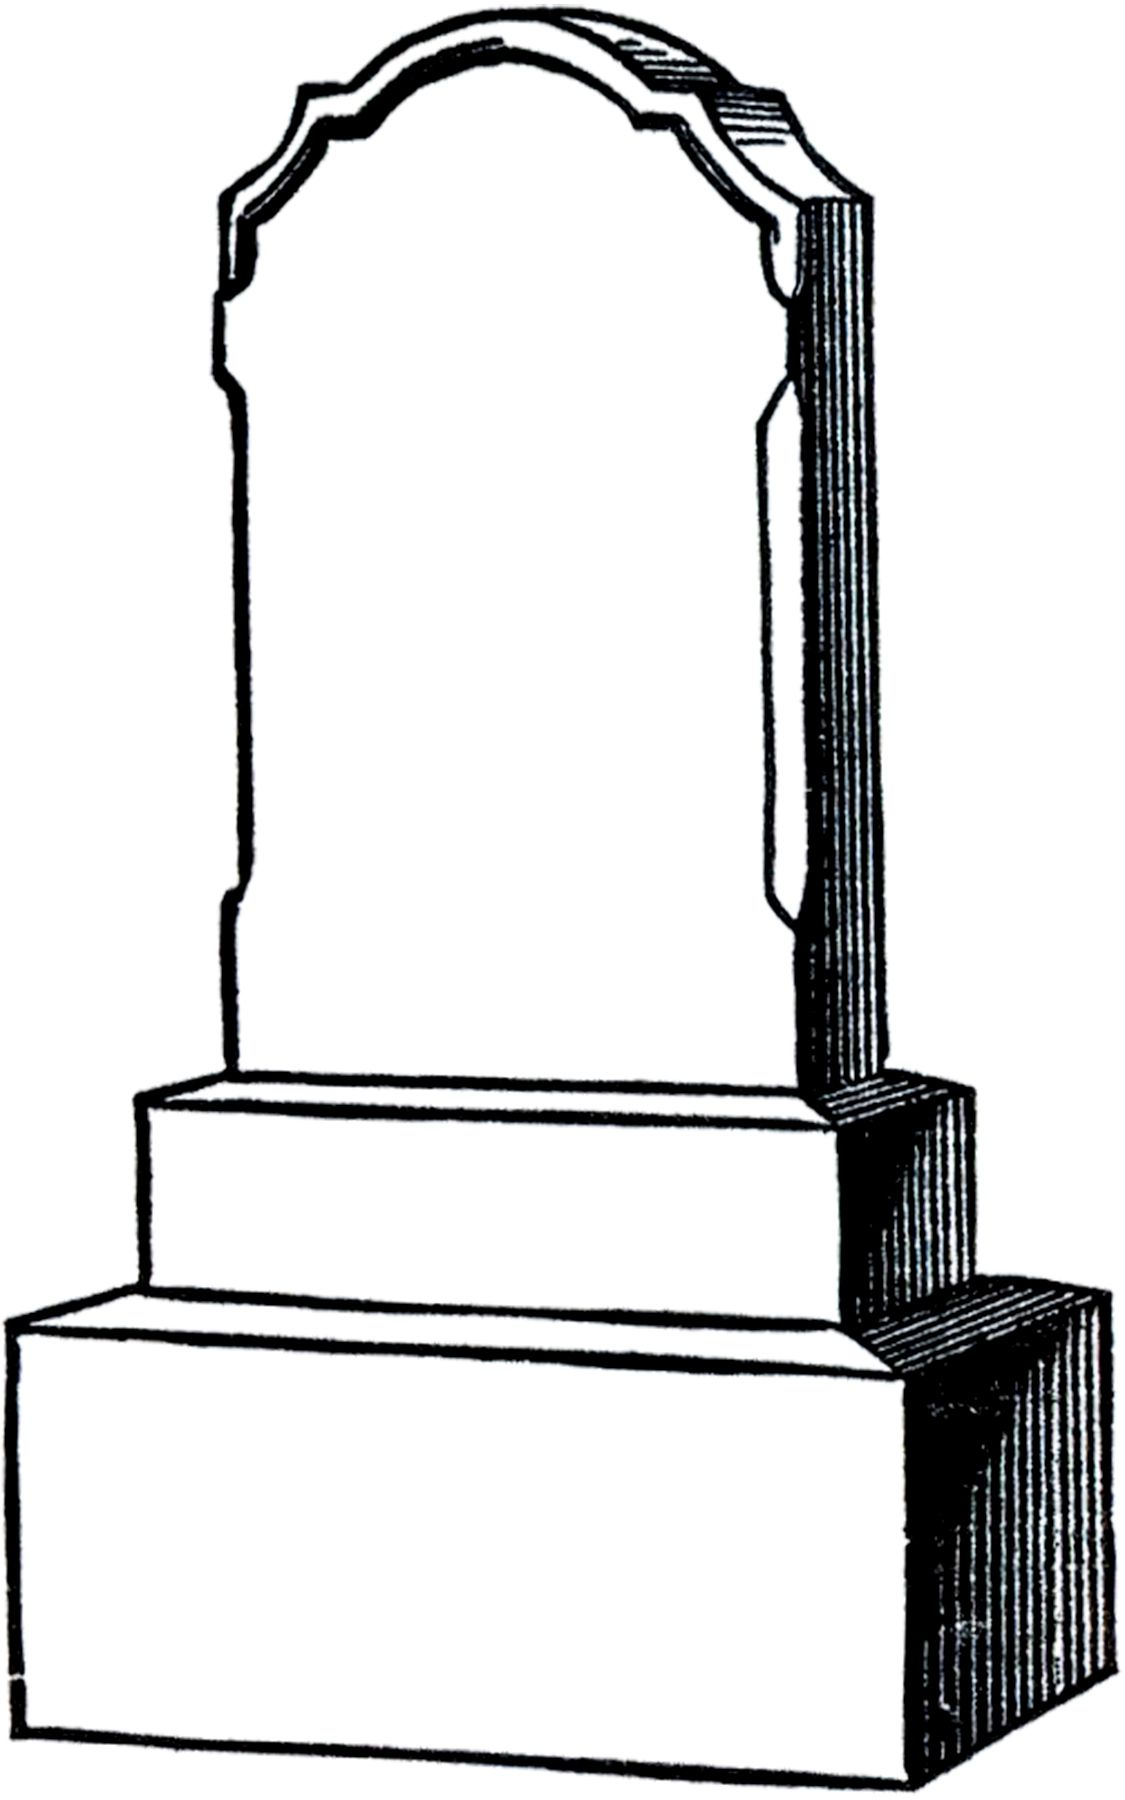 tombstone silhouette at getdrawings com free for personal use rh getdrawings com clipart tombstone clipart tombstone